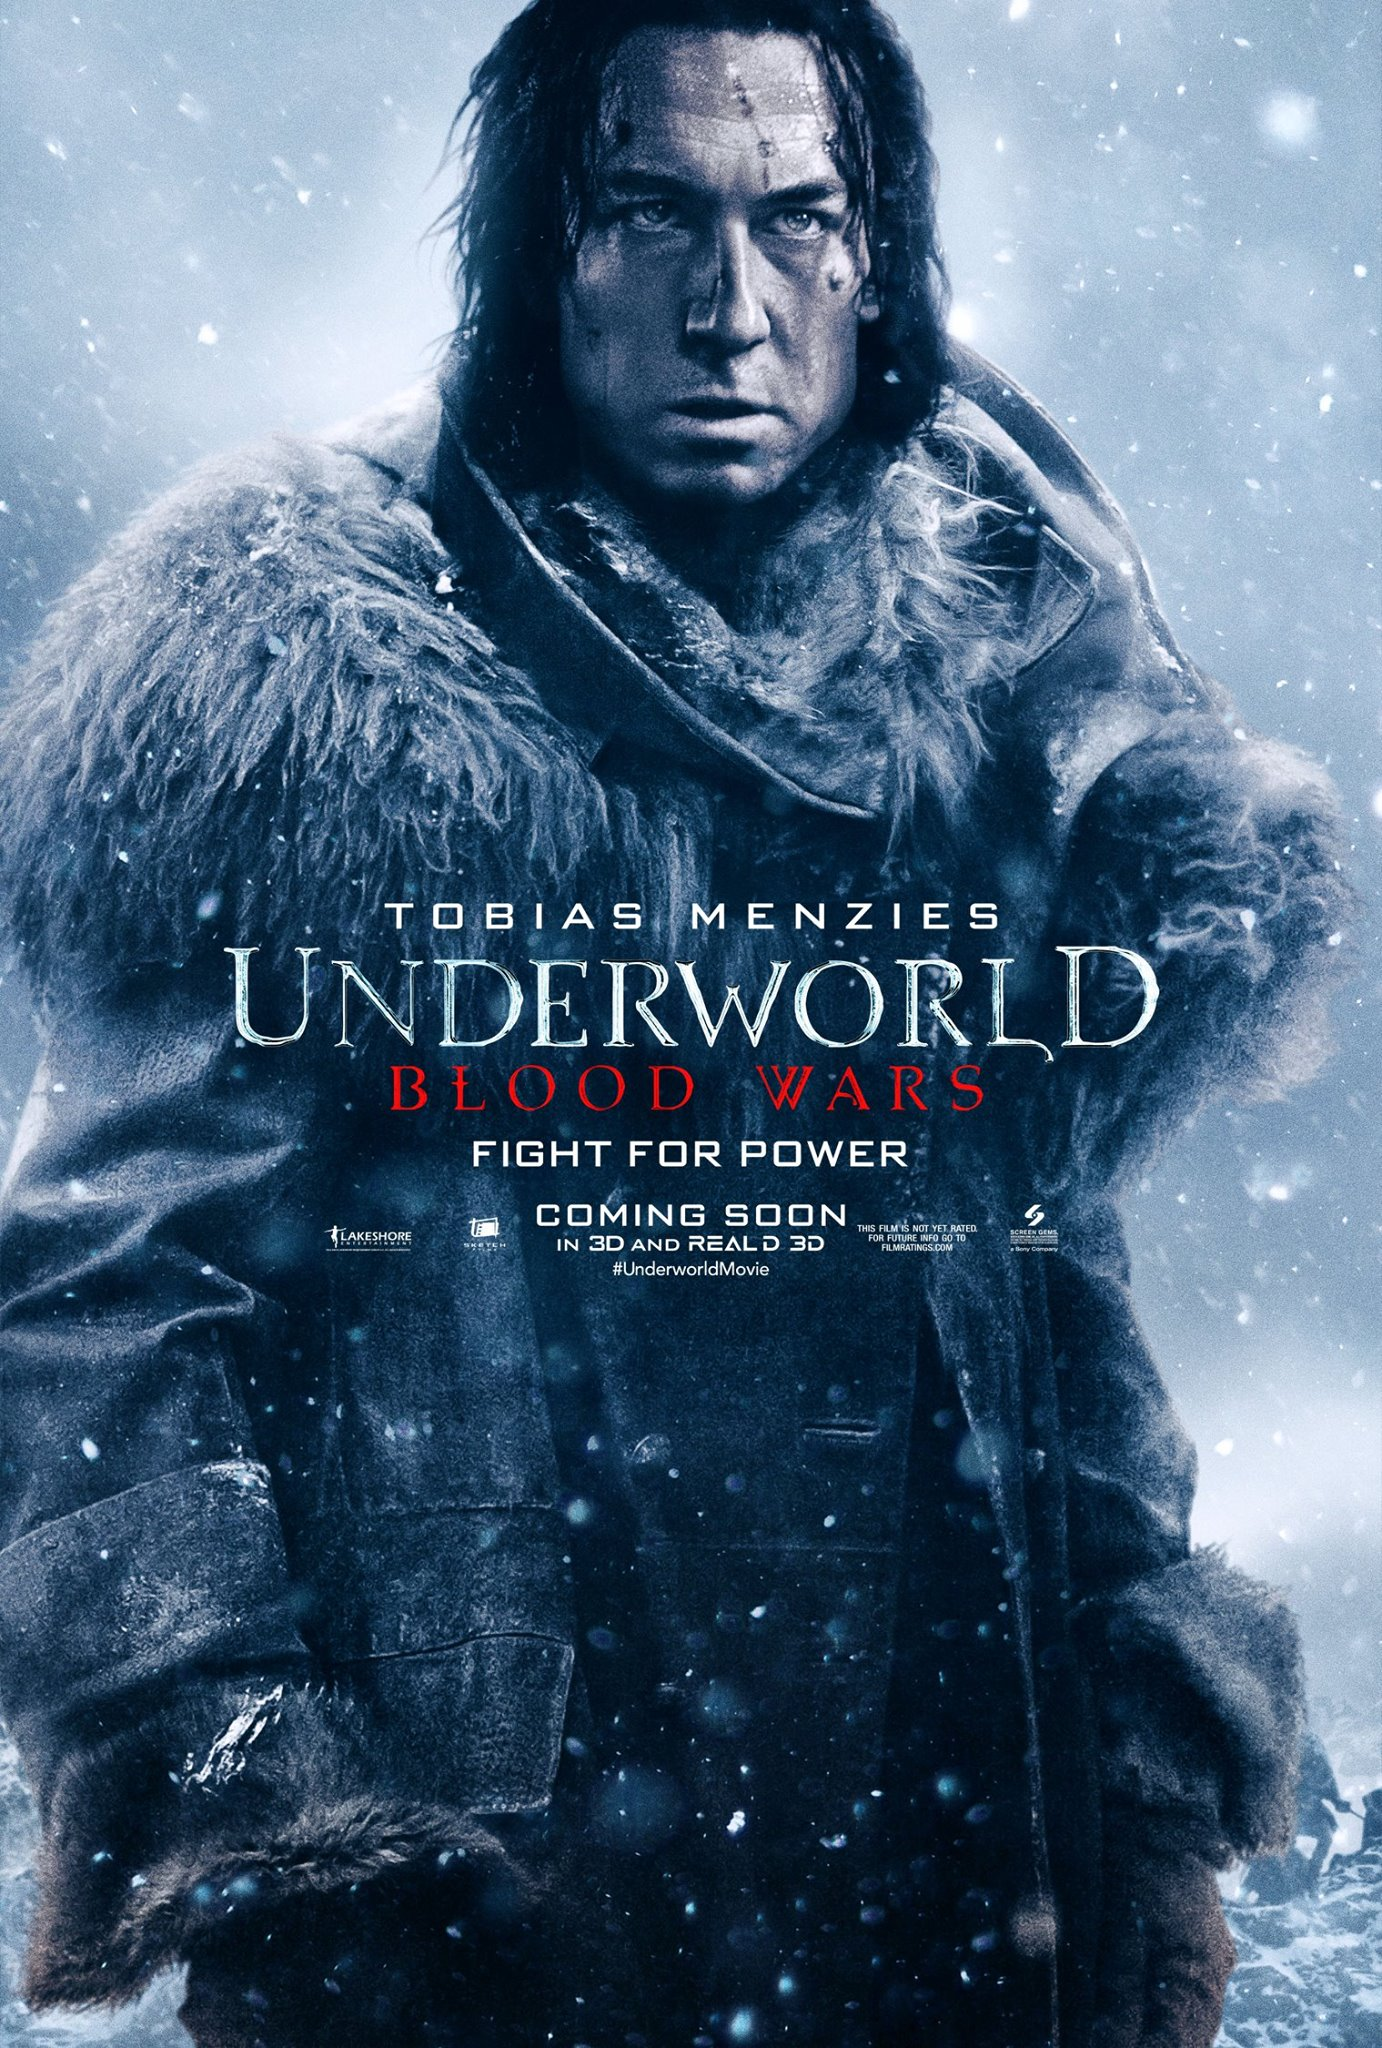 Emergency 5 171 creature factory - Underworld Blood Wars Interview Visual Effects Supervisor James Mcquaide Sci Fi Bulletin Exploring The Universes Of Sf Fantasy Horror